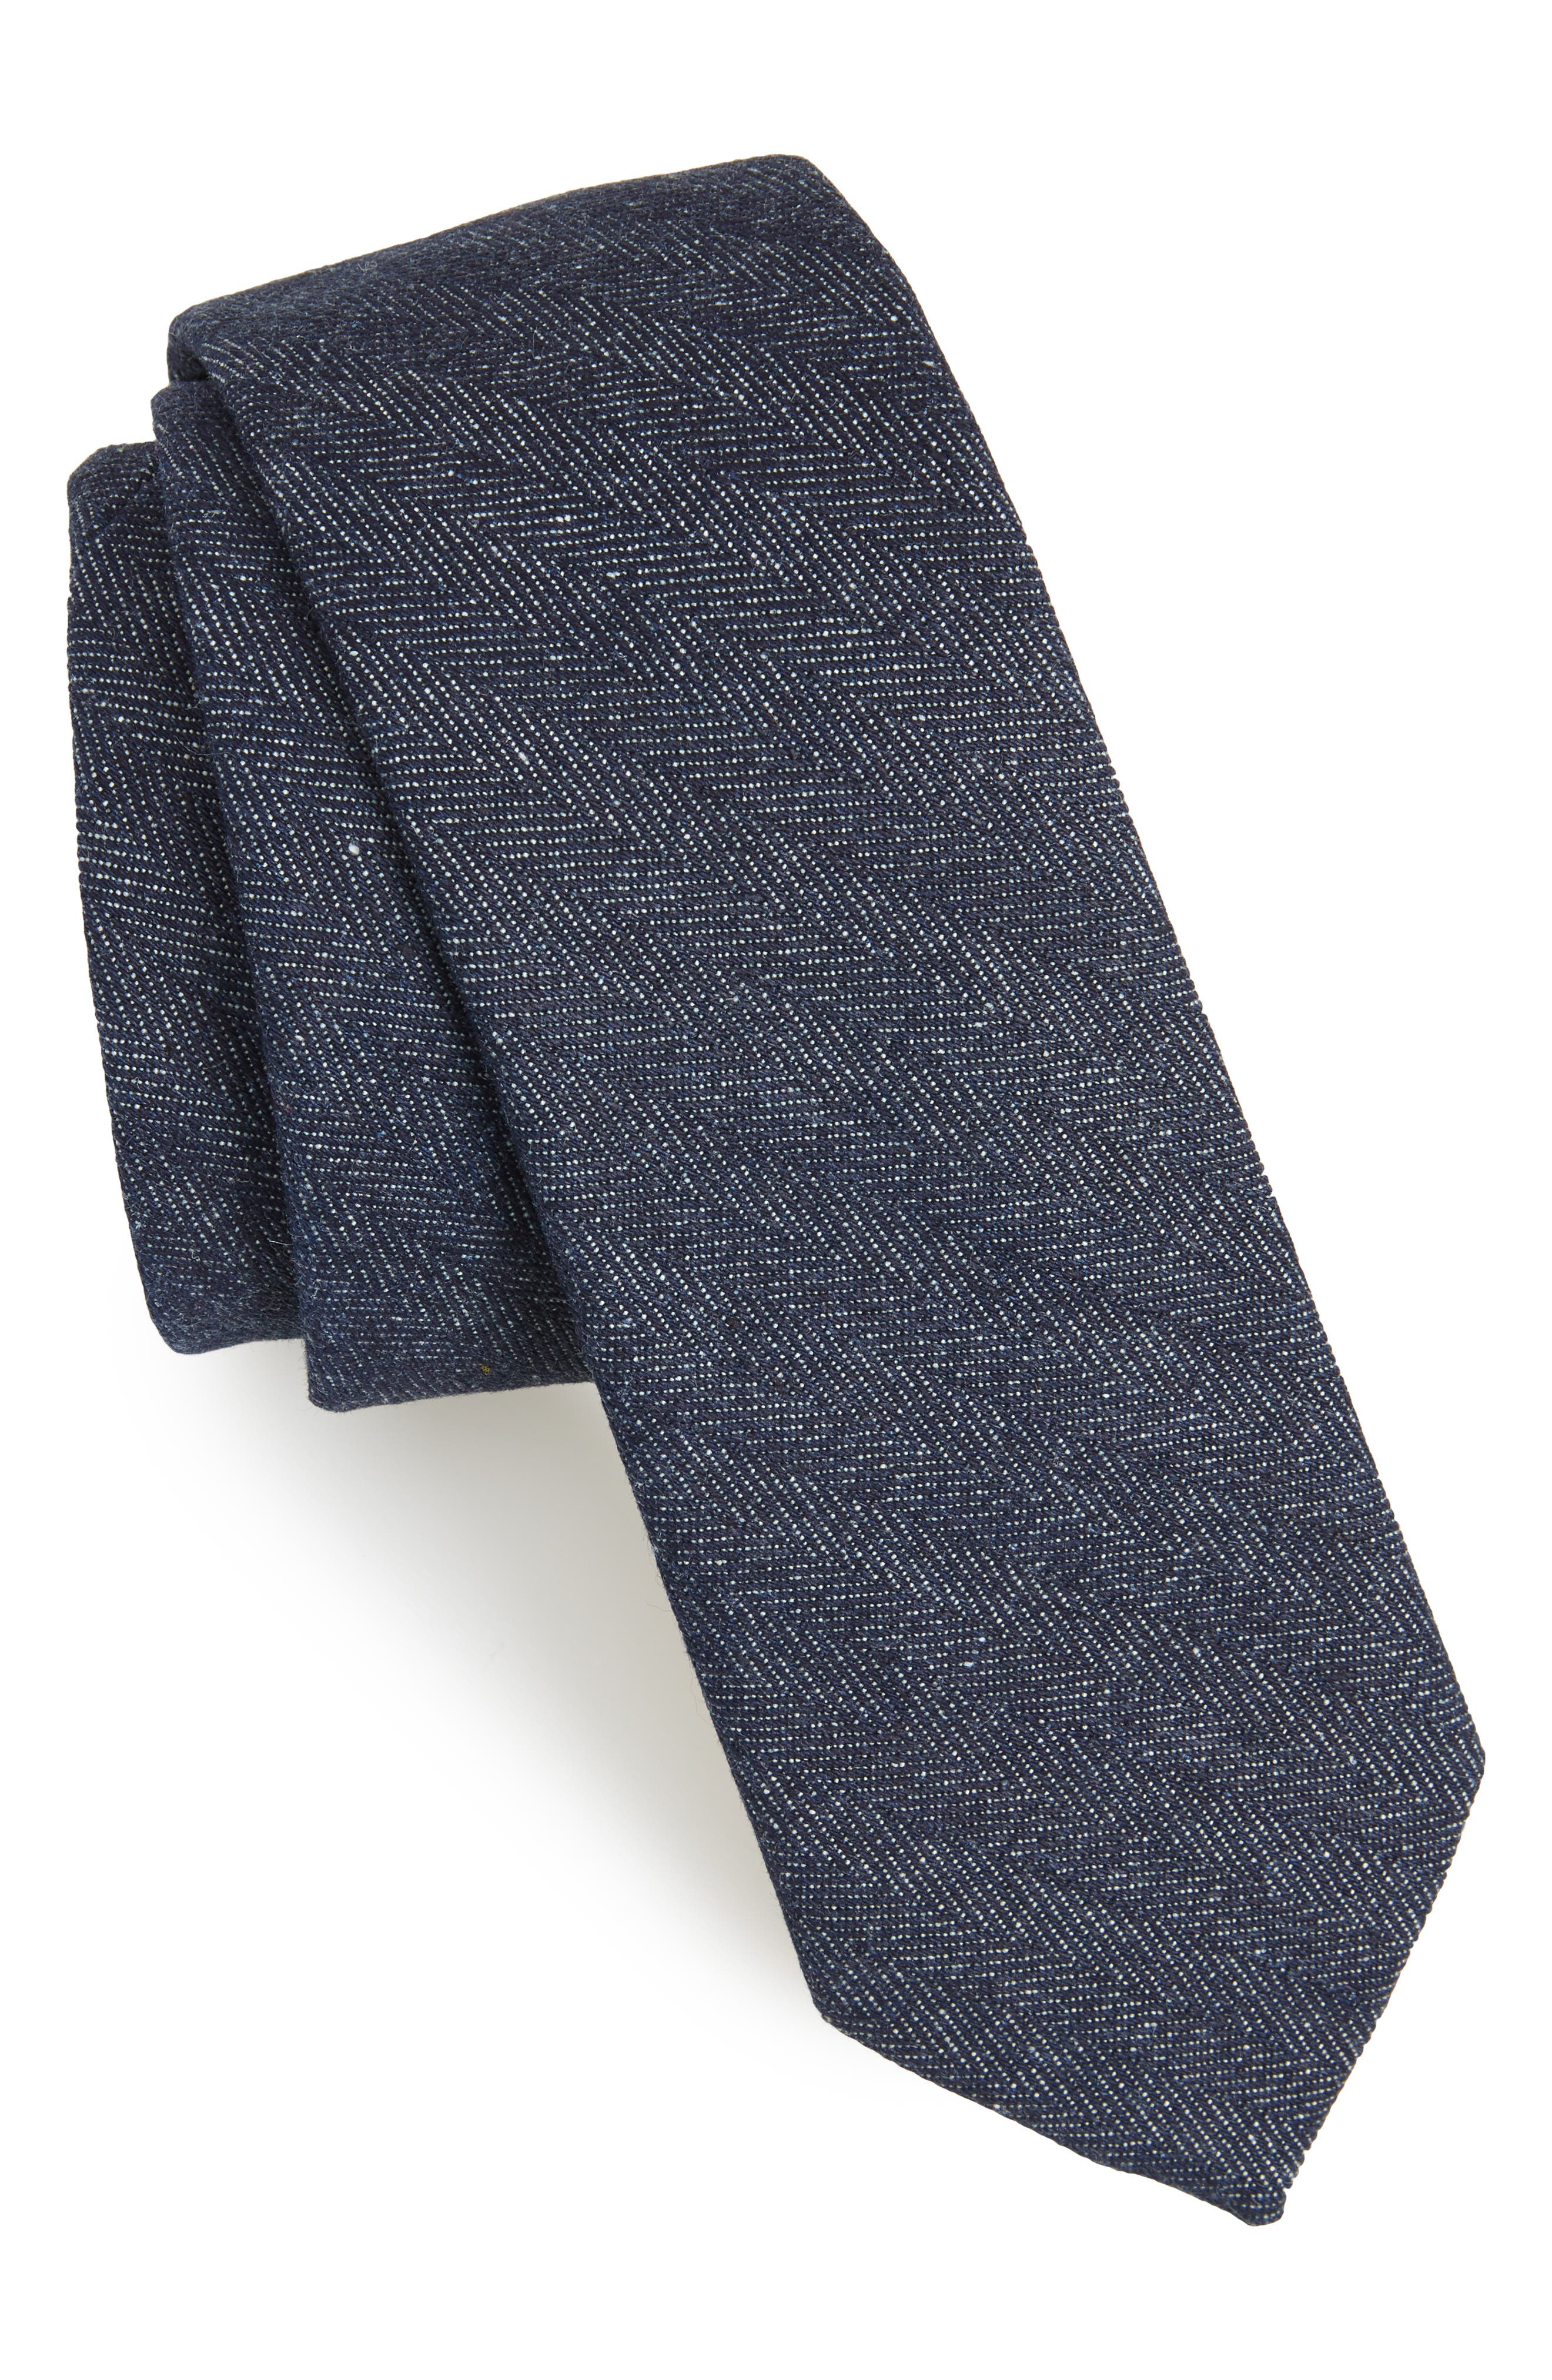 Thames Solid Skinny Tie,                             Main thumbnail 1, color,                             410